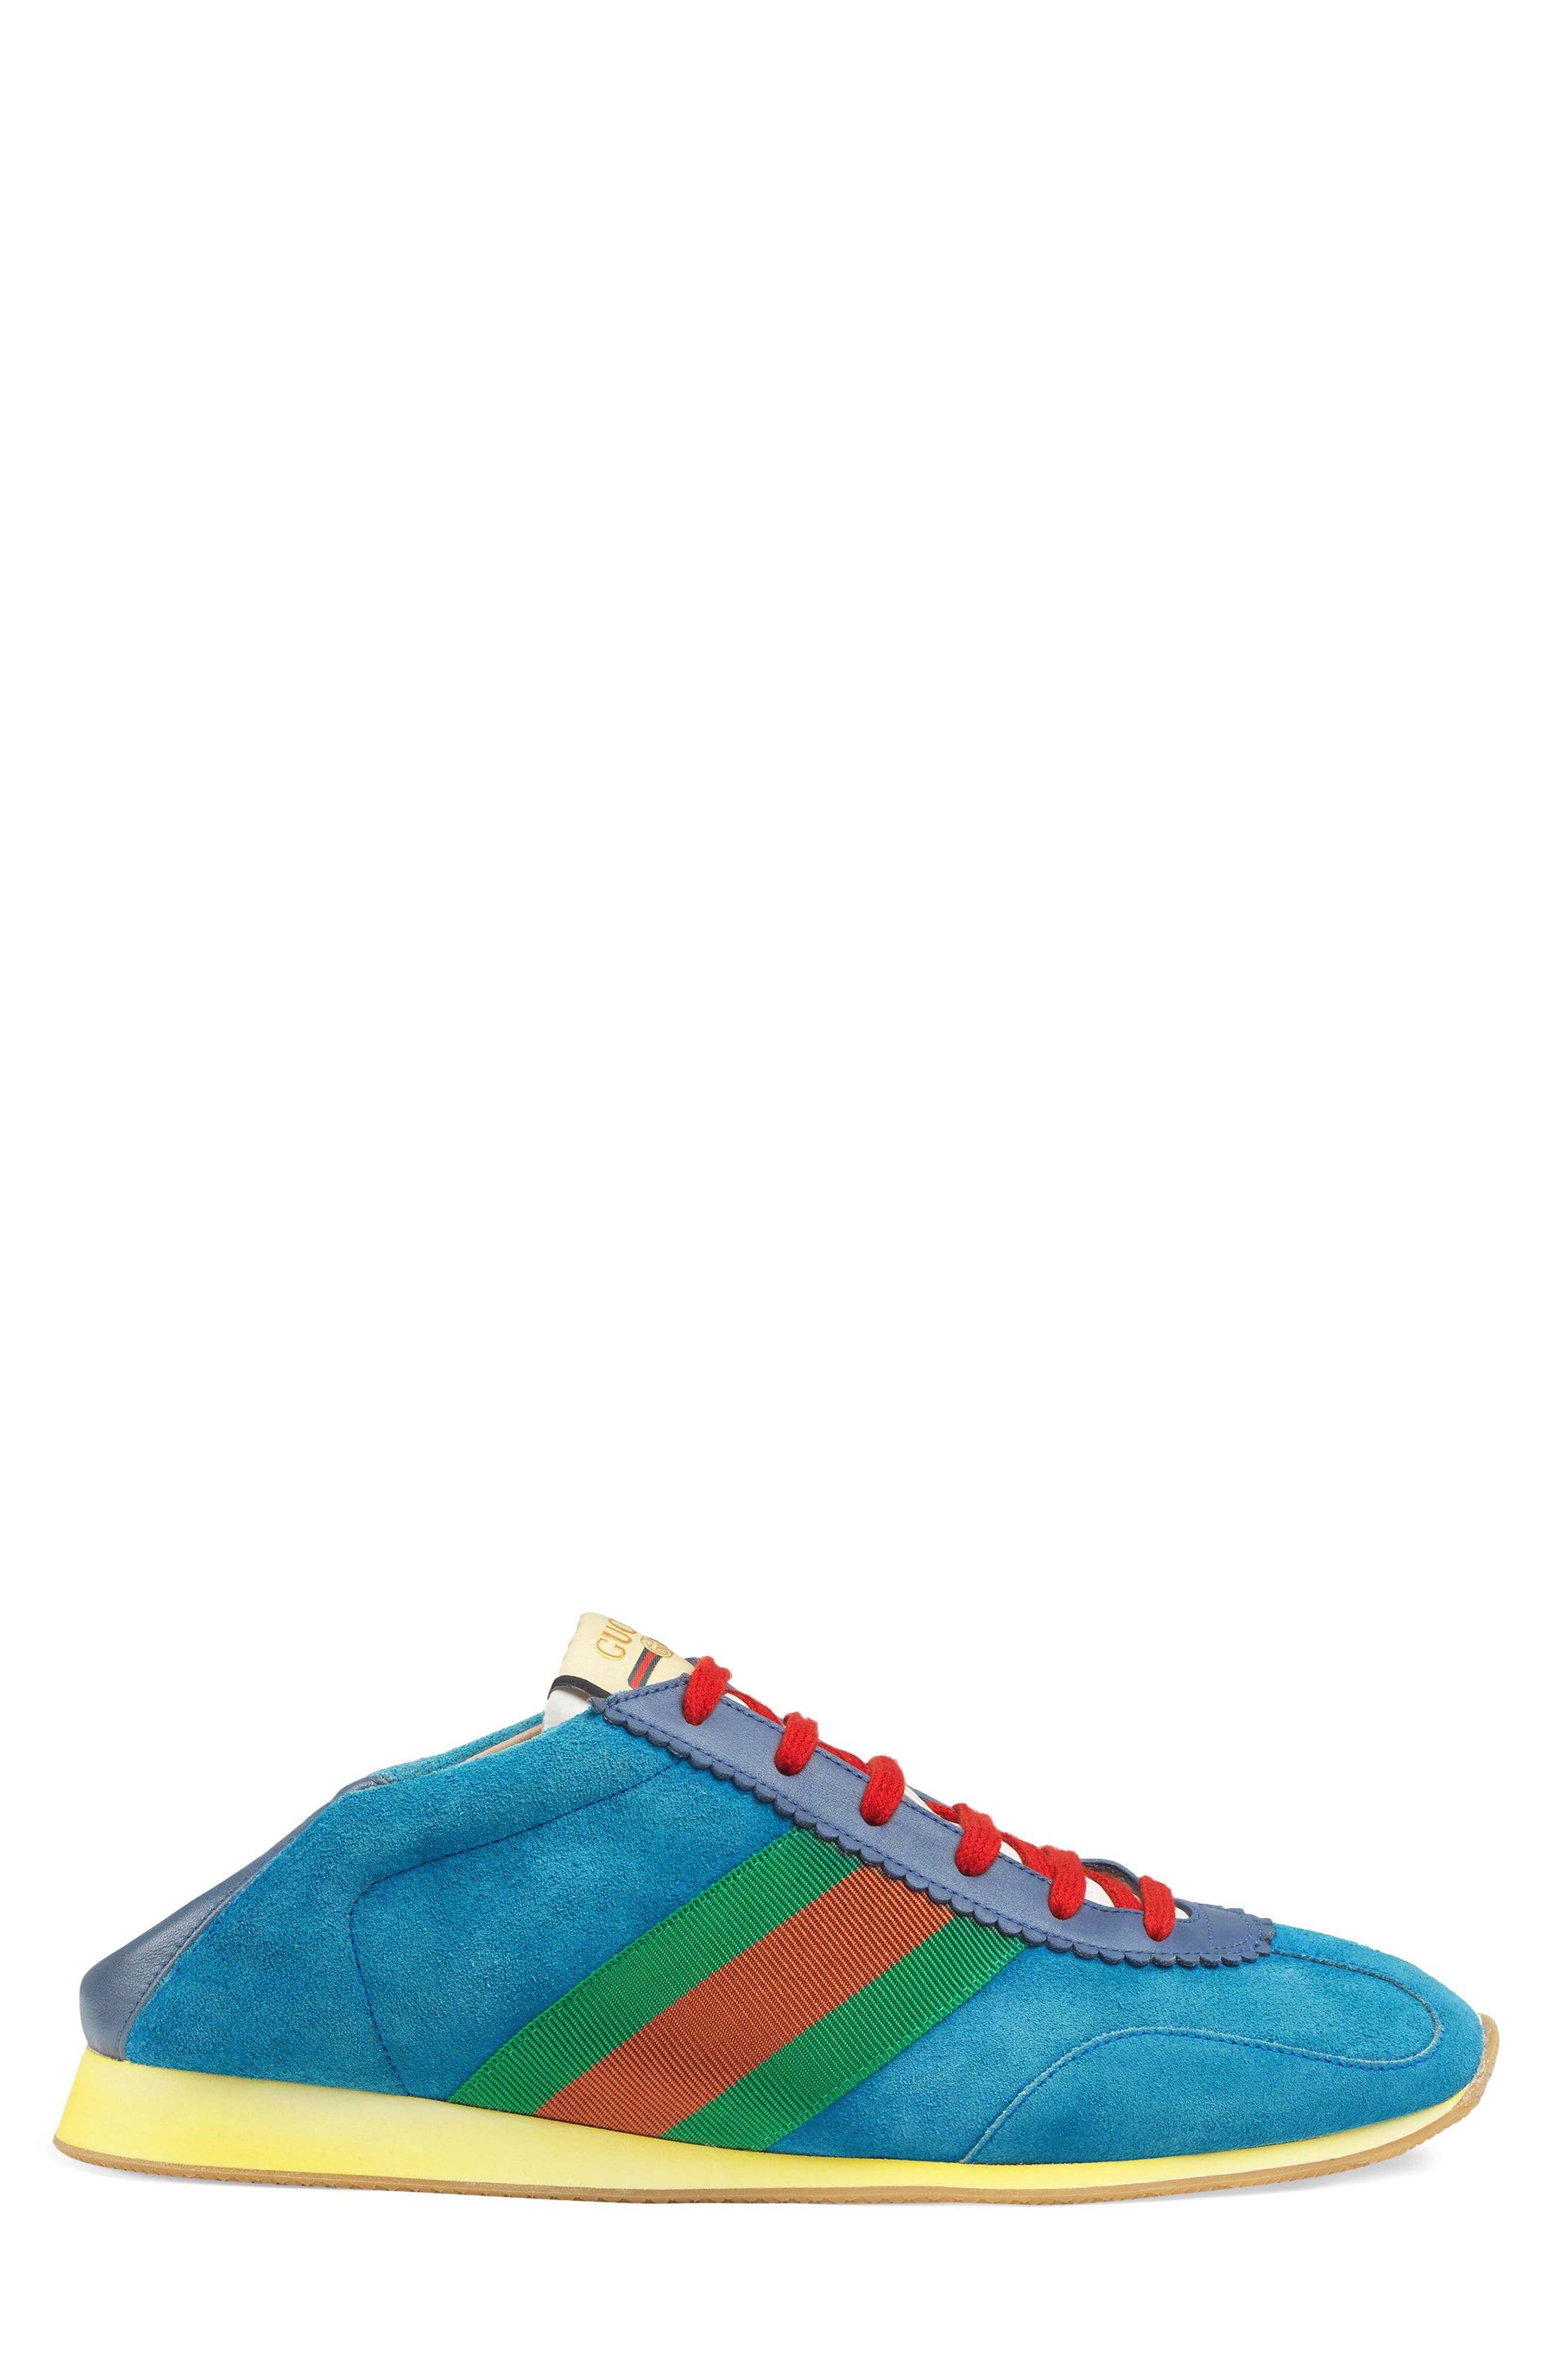 Rocket Collapsible Sneaker,                             Alternate thumbnail 3, color,                             BLUE/ INK